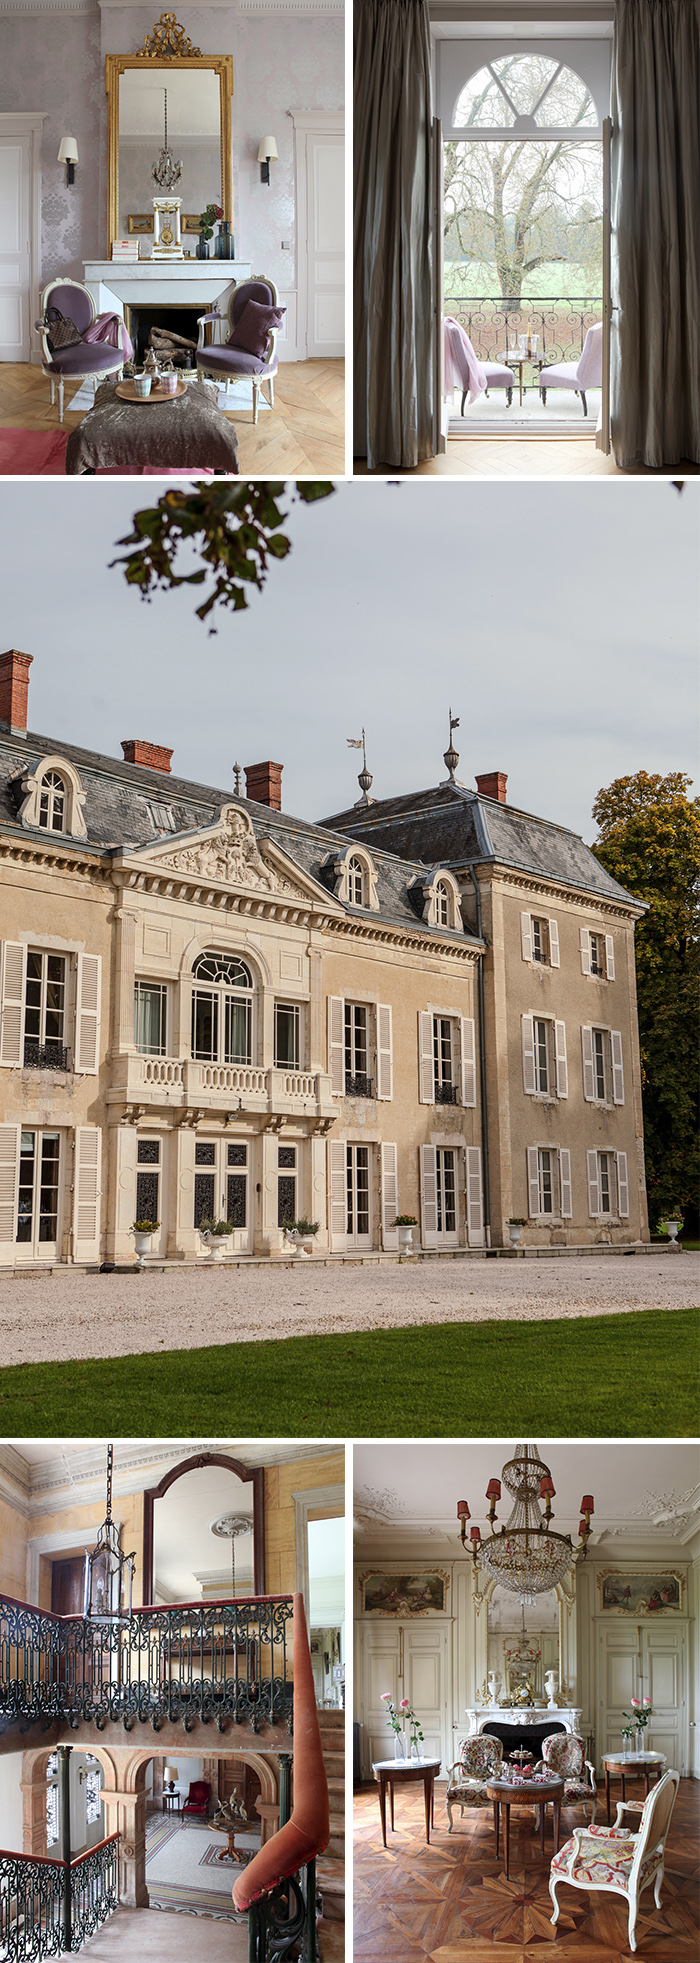 Sylvie-Gil-Workshop-Chateau-de-Varennes